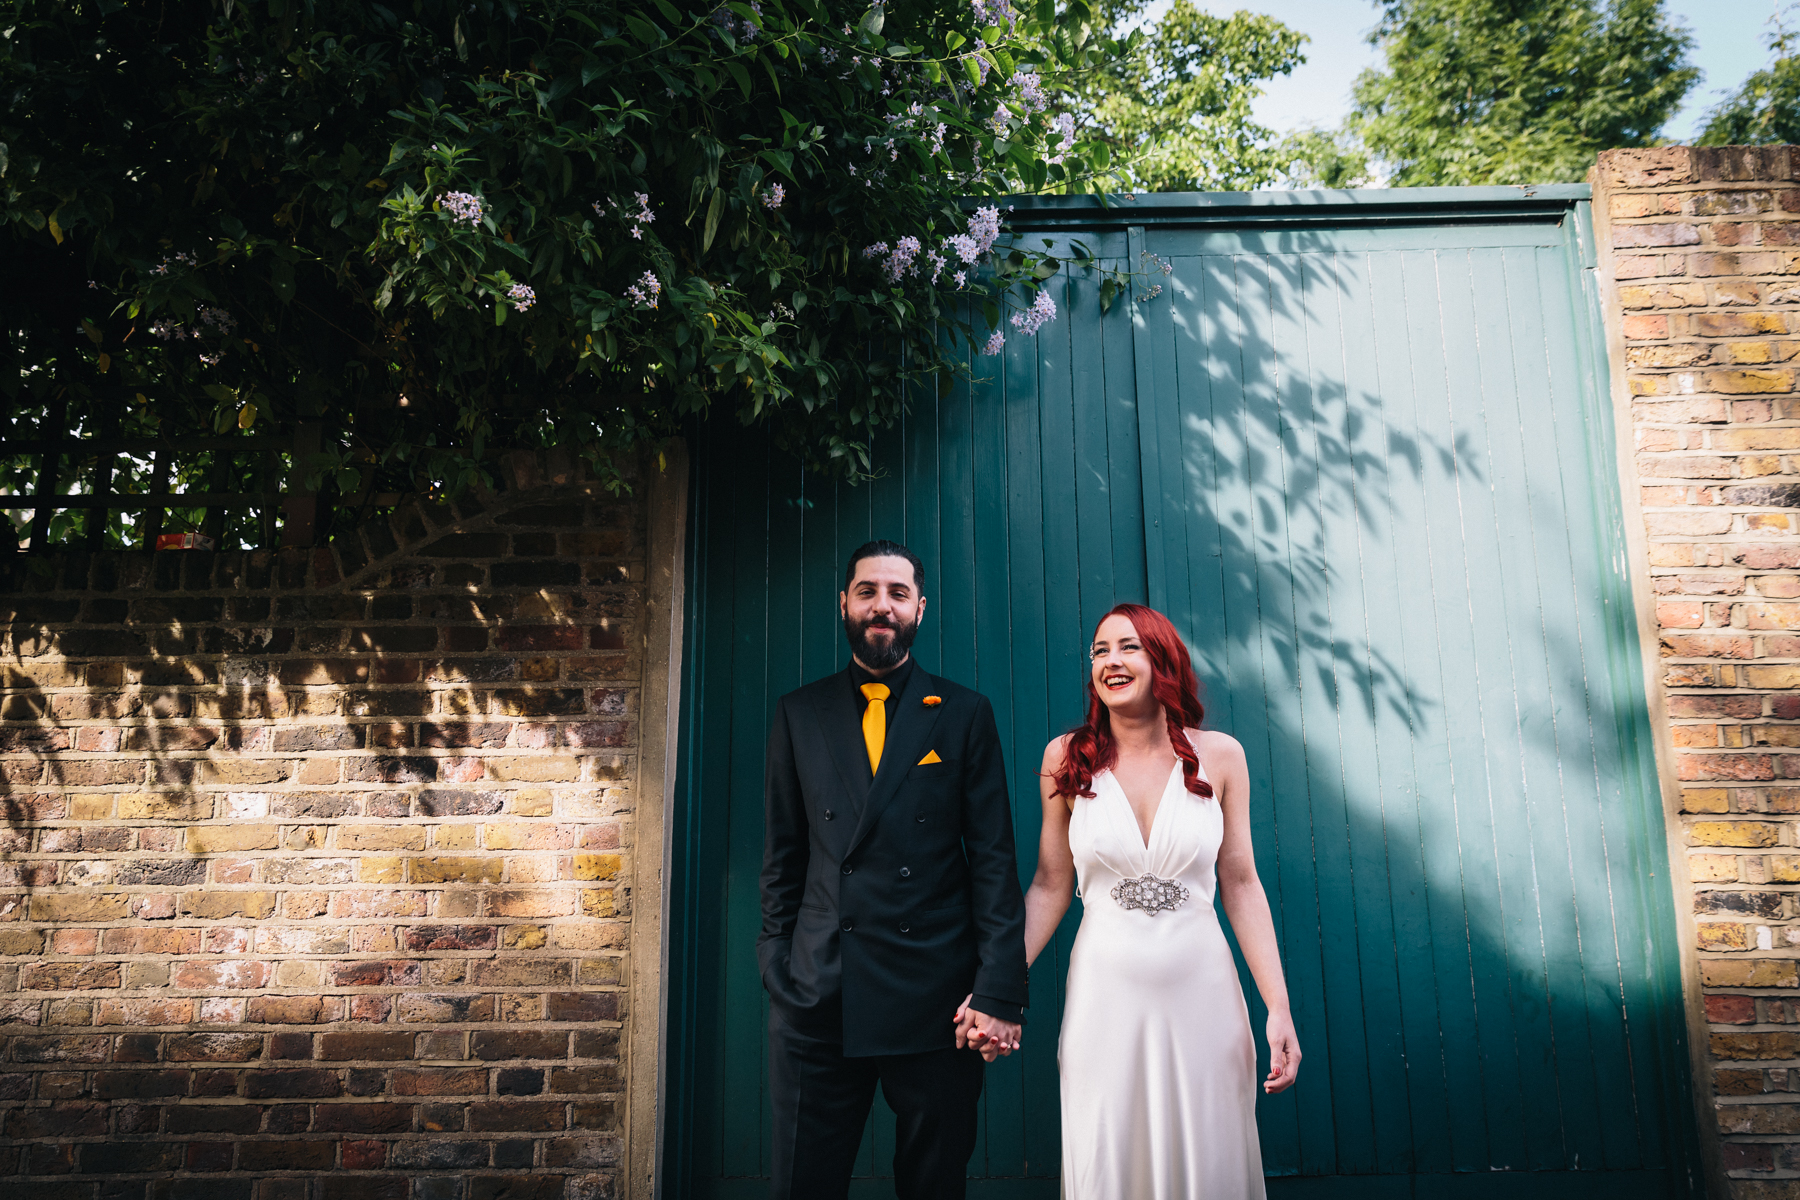 Stokenewington_wedding14